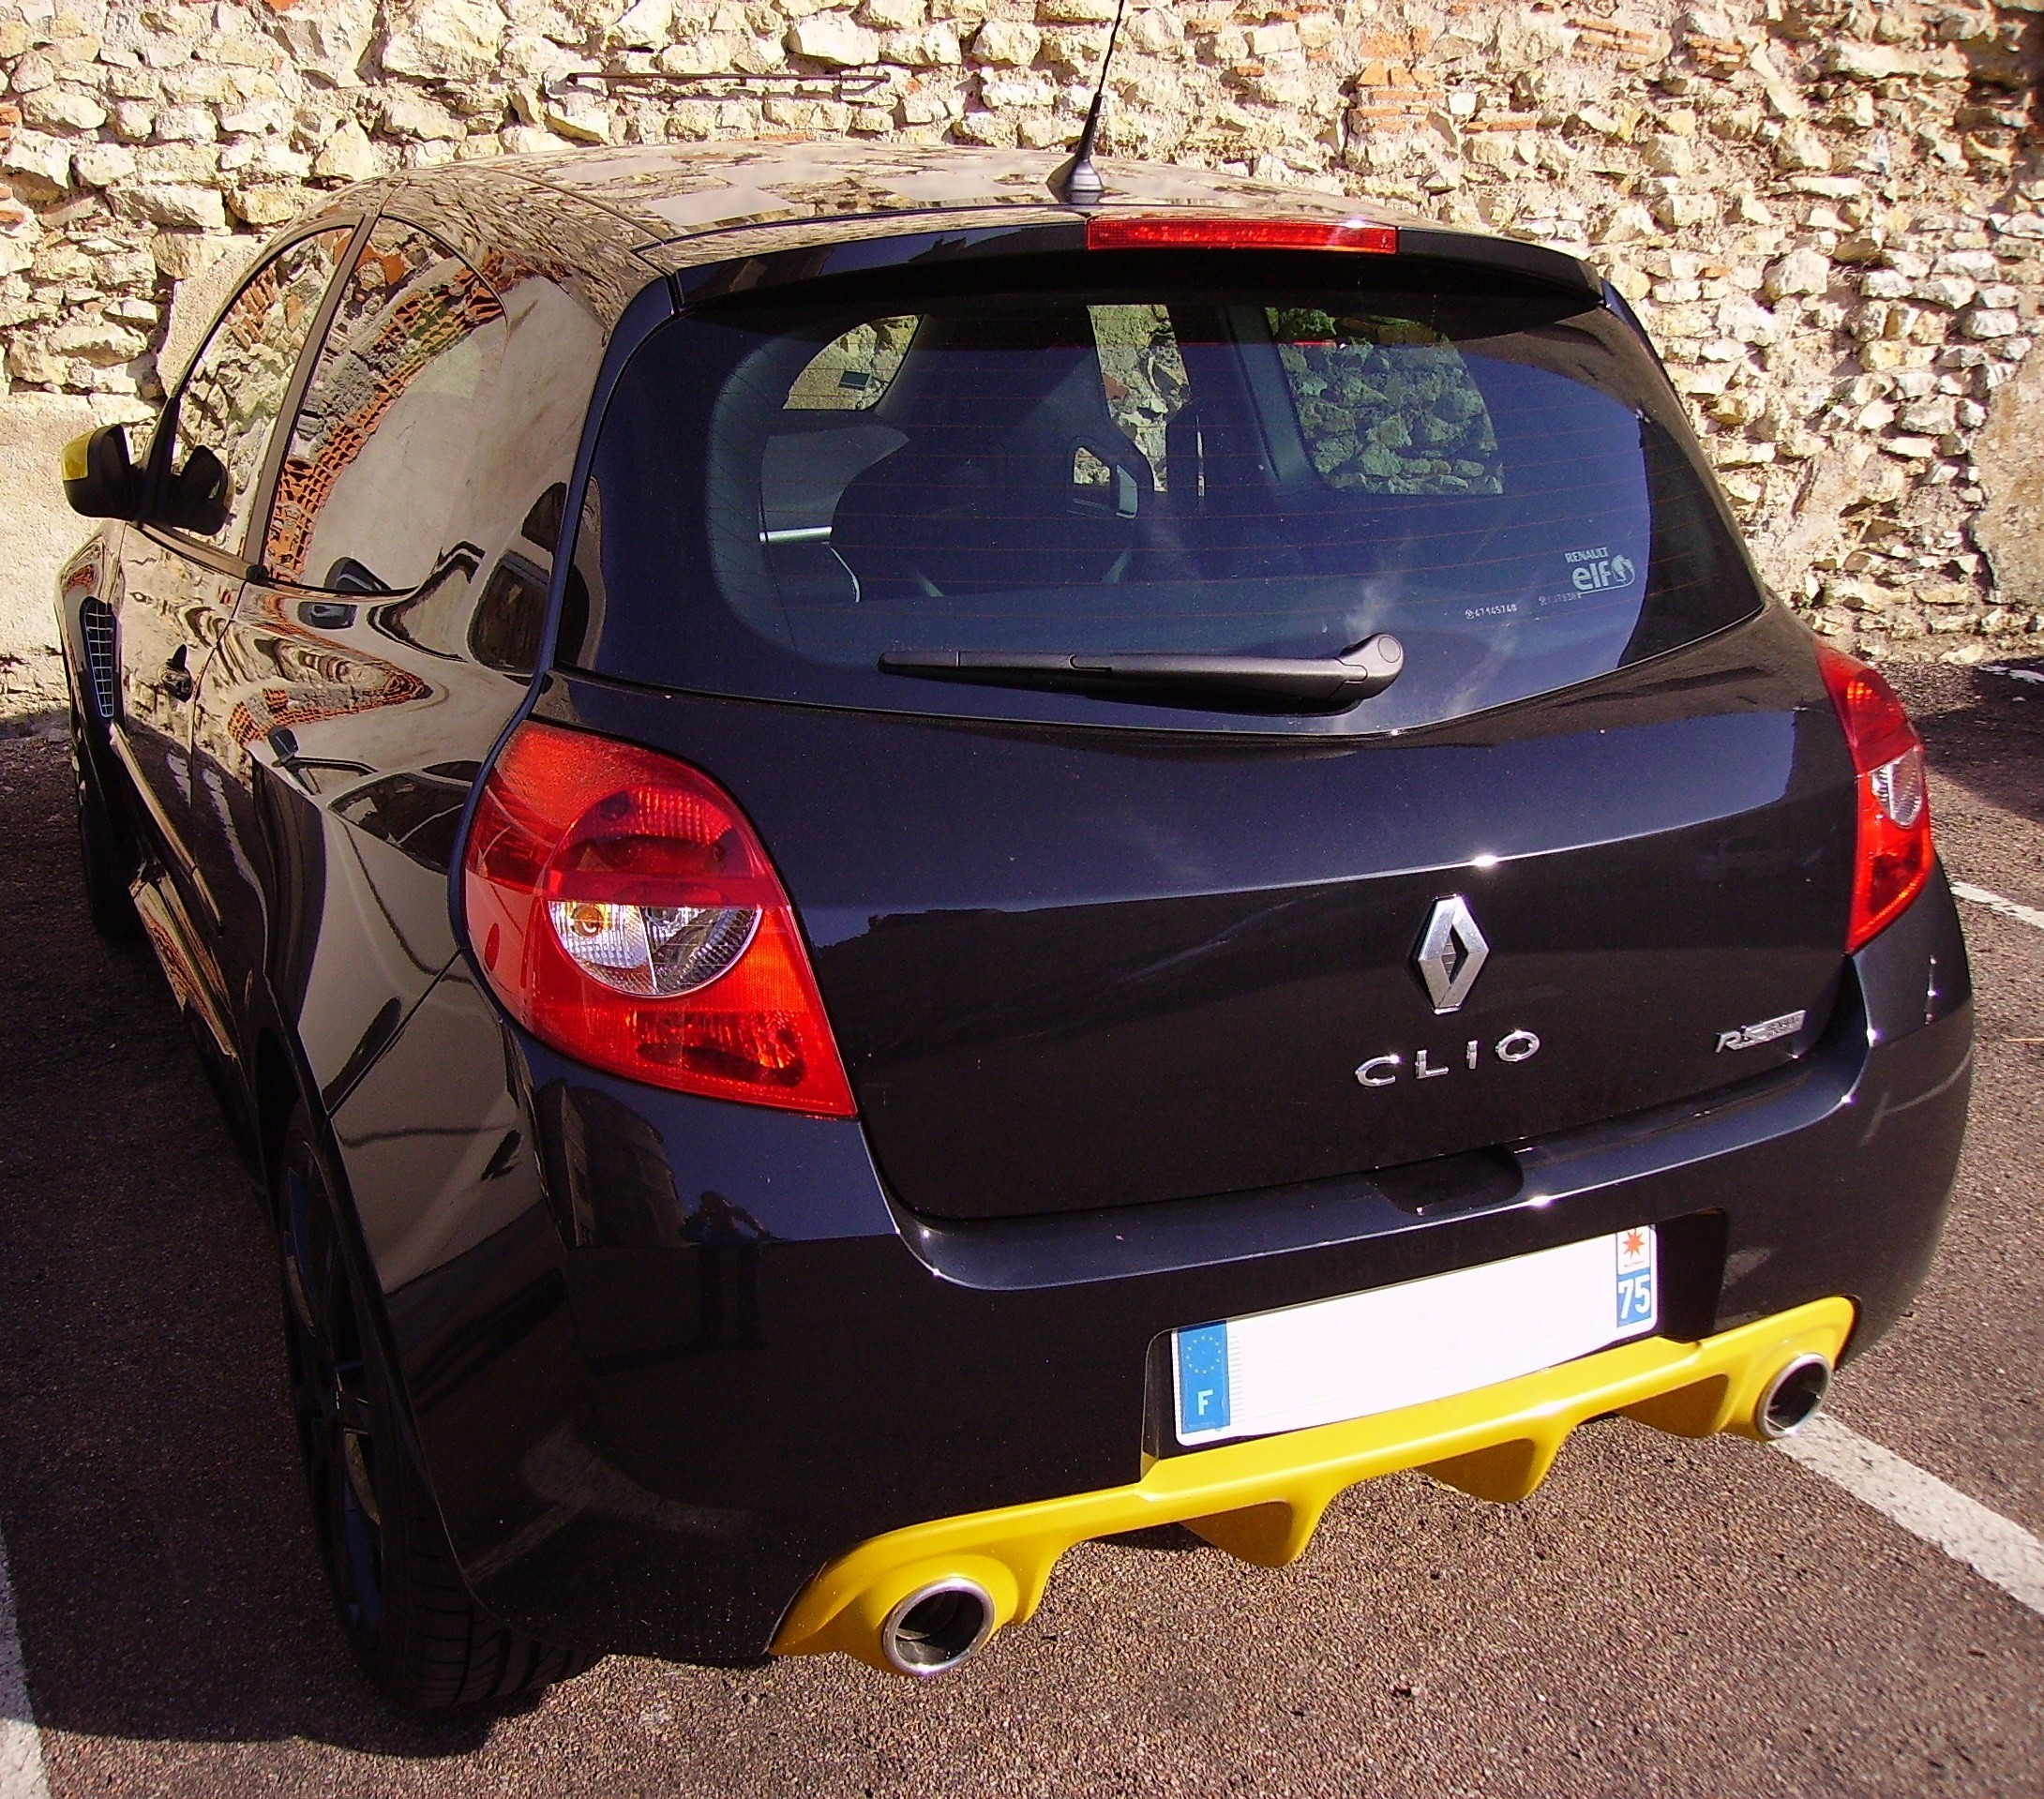 file clio rs red bull racing wikimedia commons. Black Bedroom Furniture Sets. Home Design Ideas